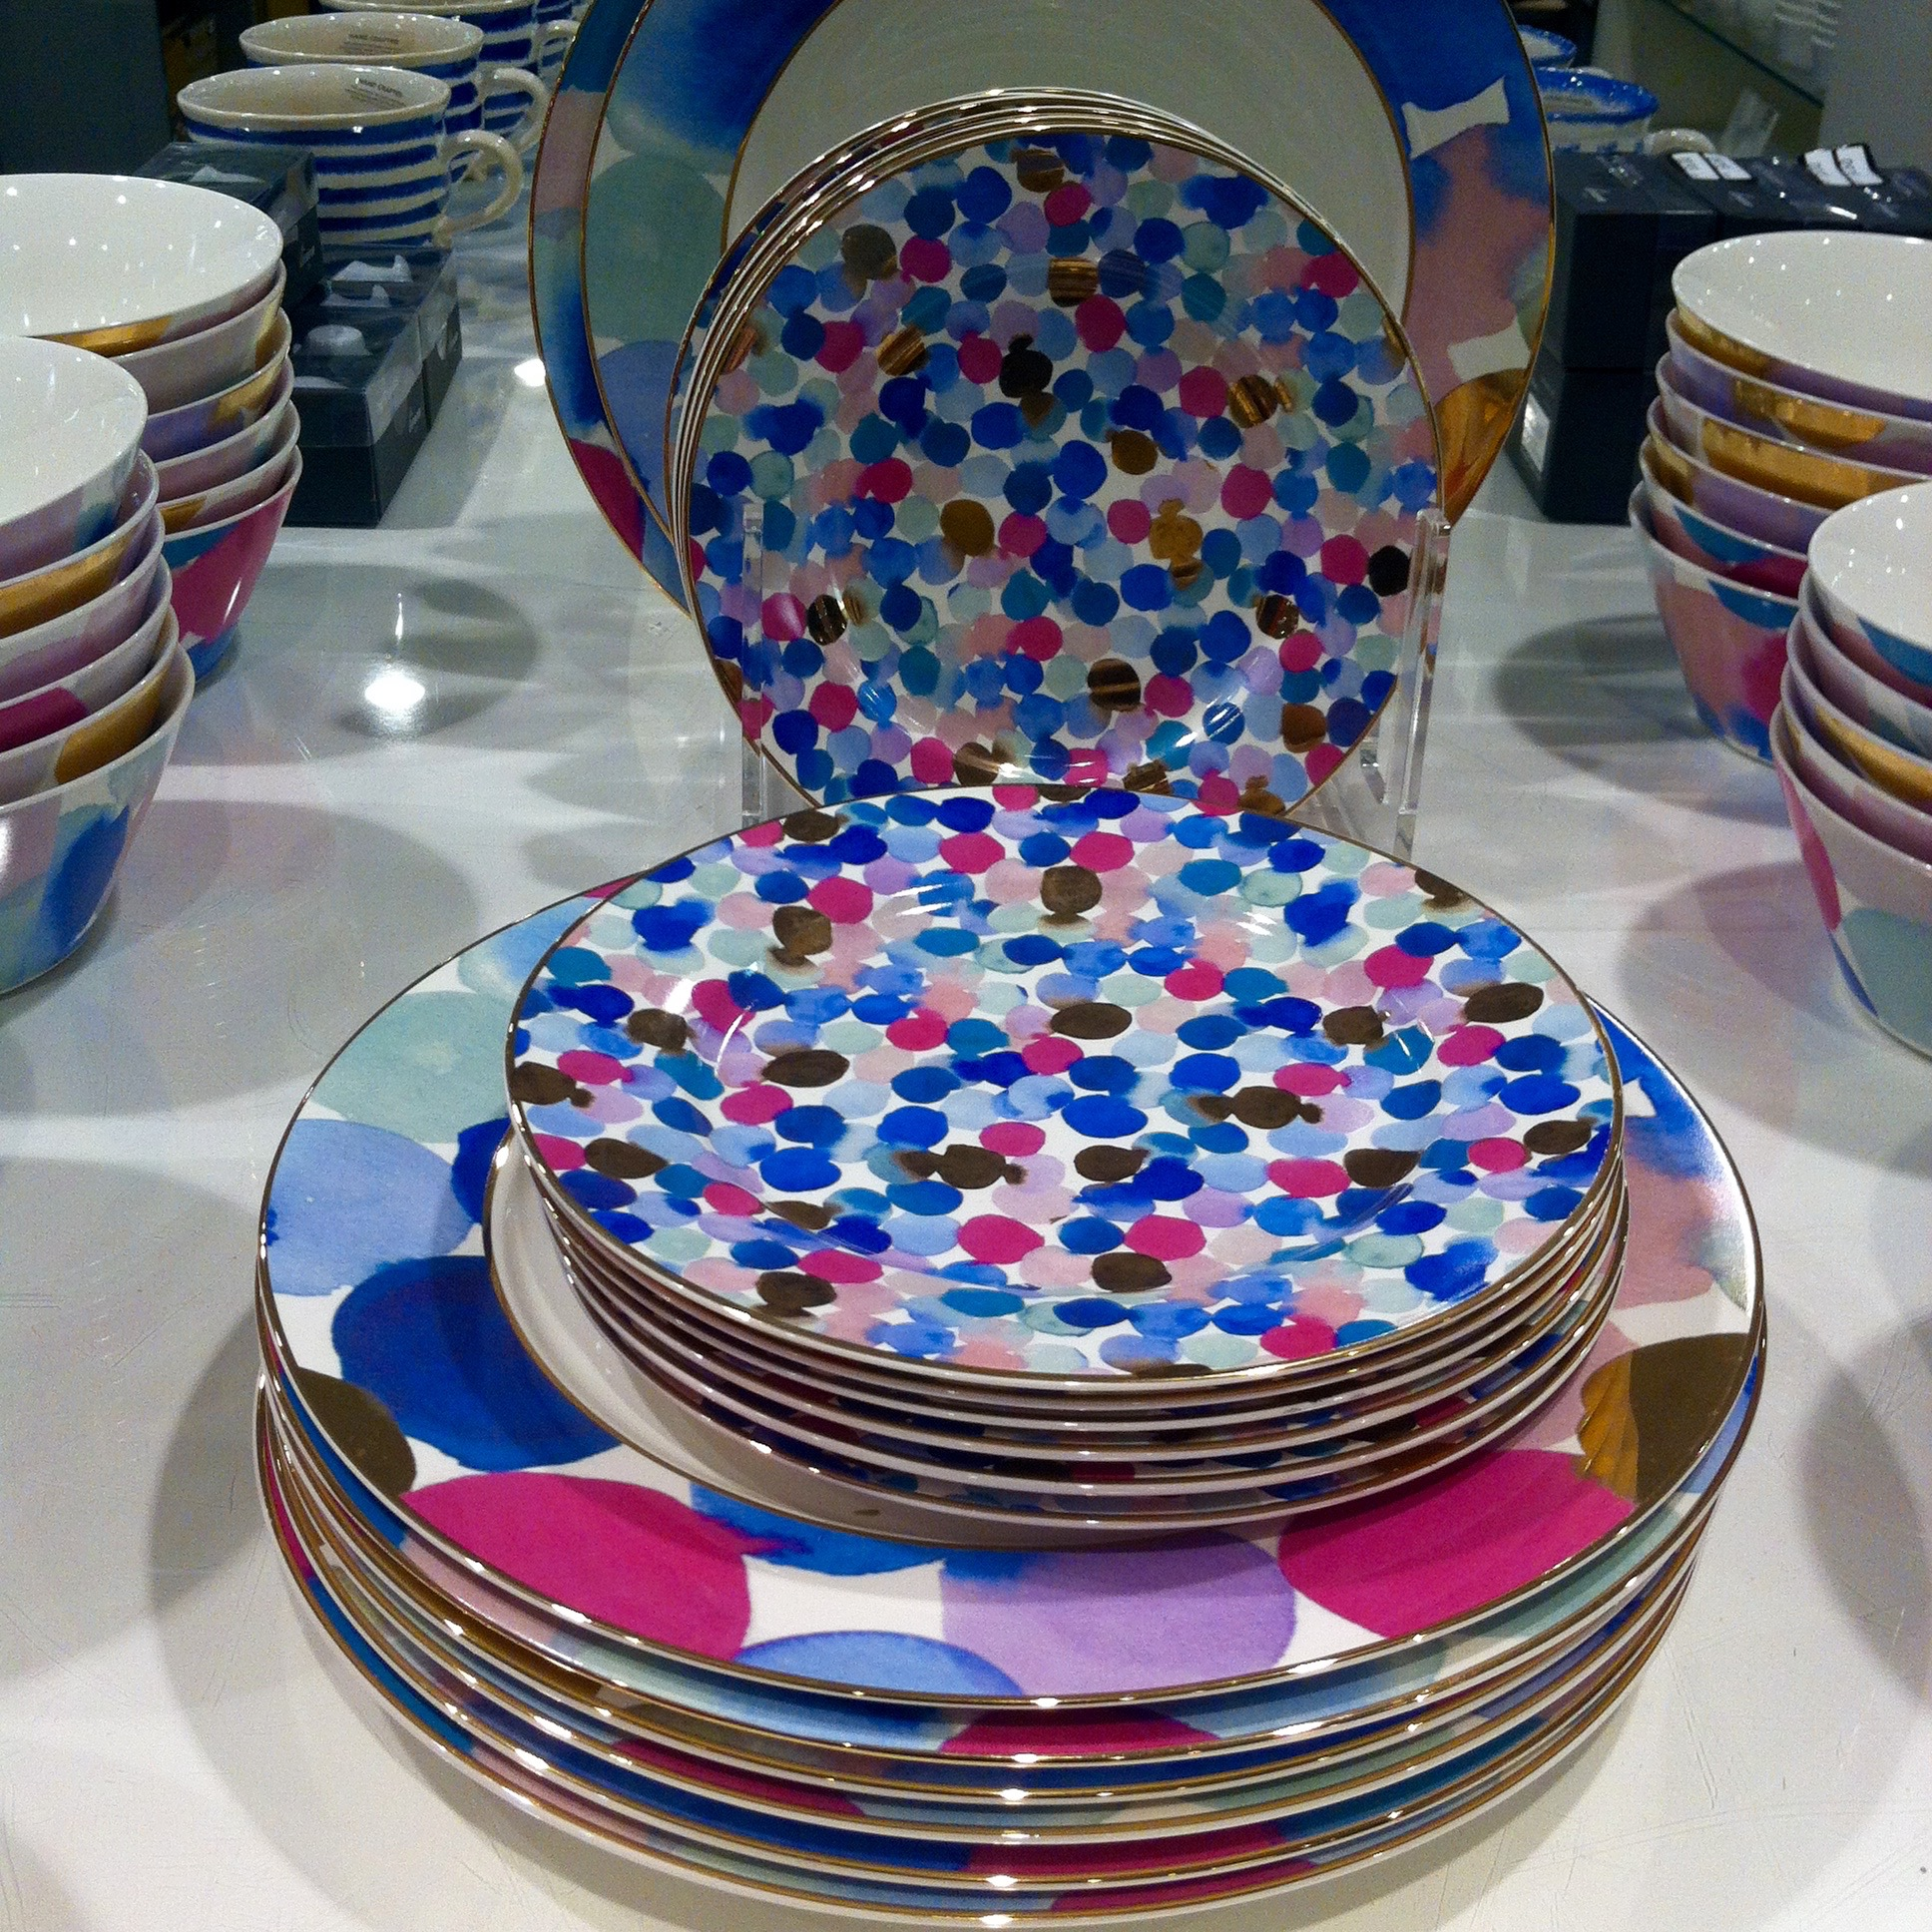 SPOTTY CROCKERY (HOUSE OF FRASER)